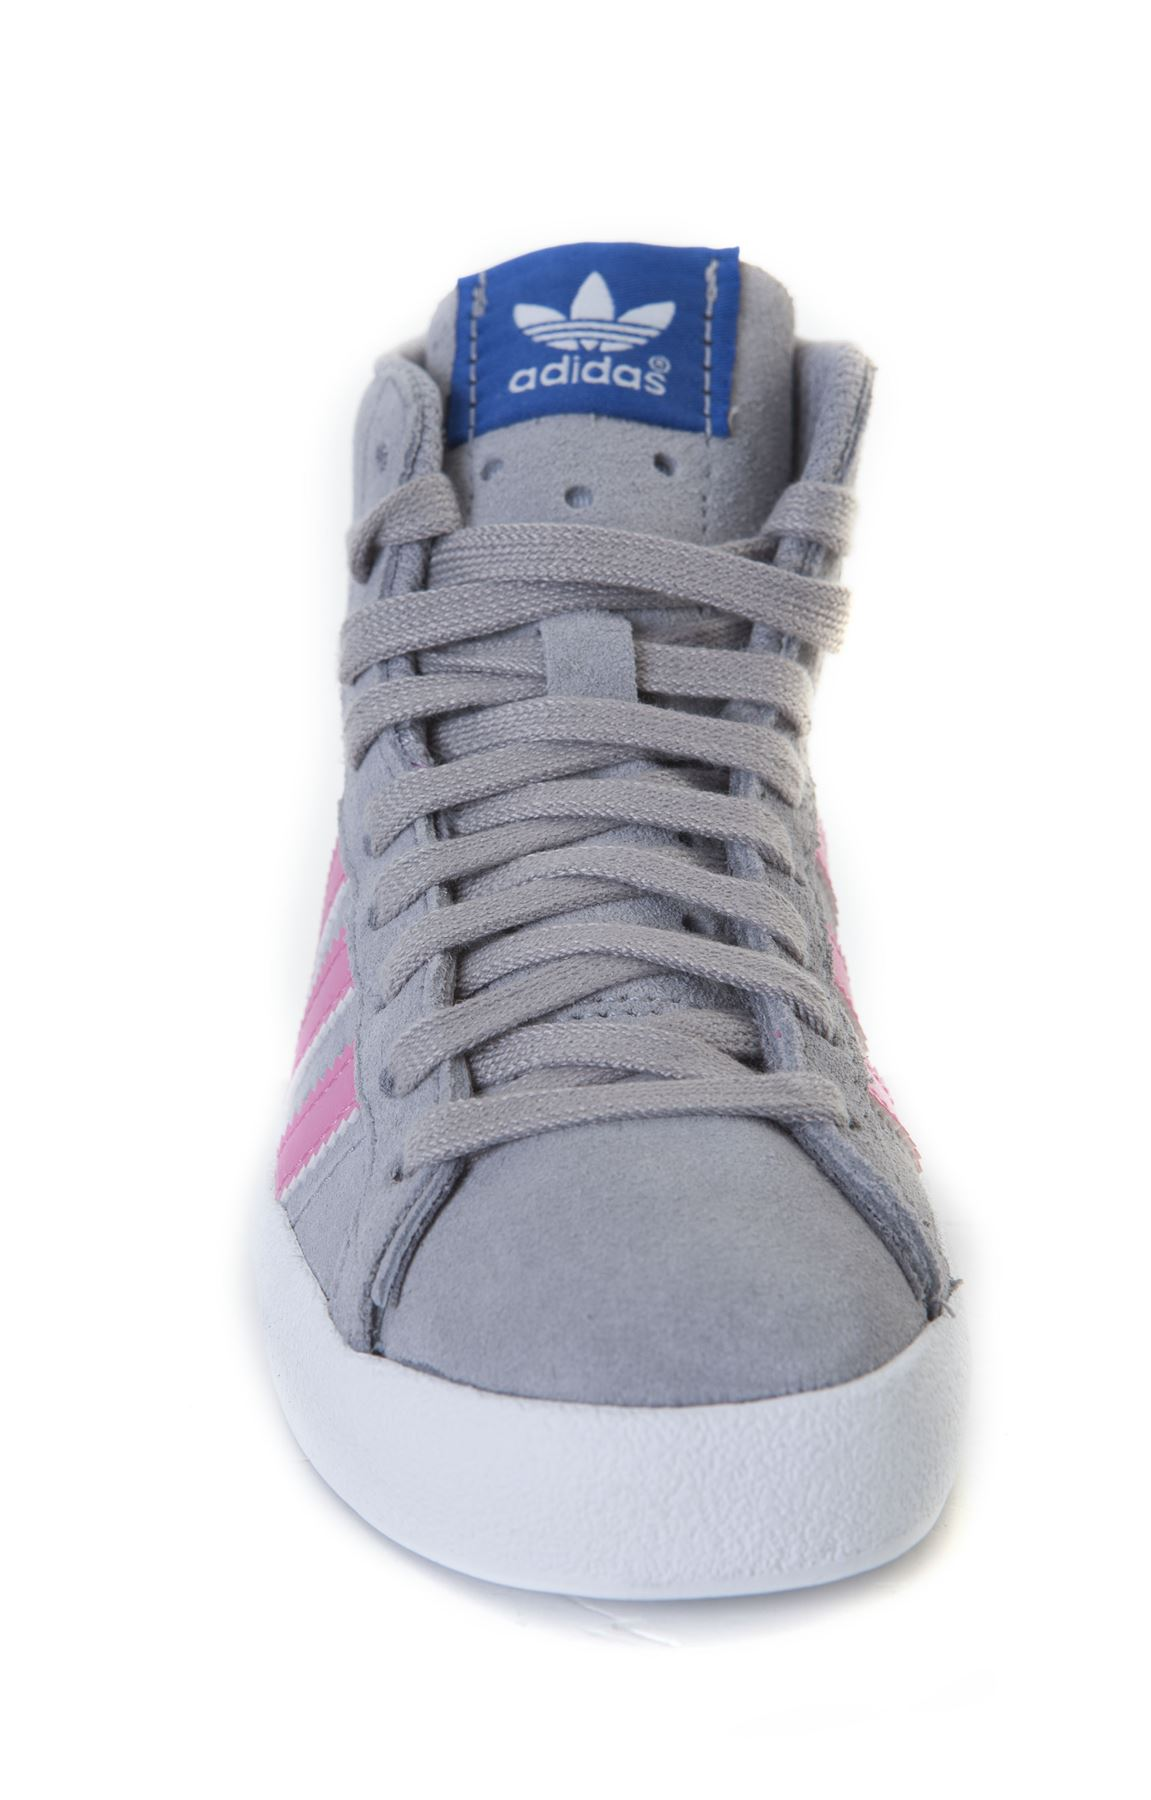 adidas shoes for gray and pink softwaretutor co uk